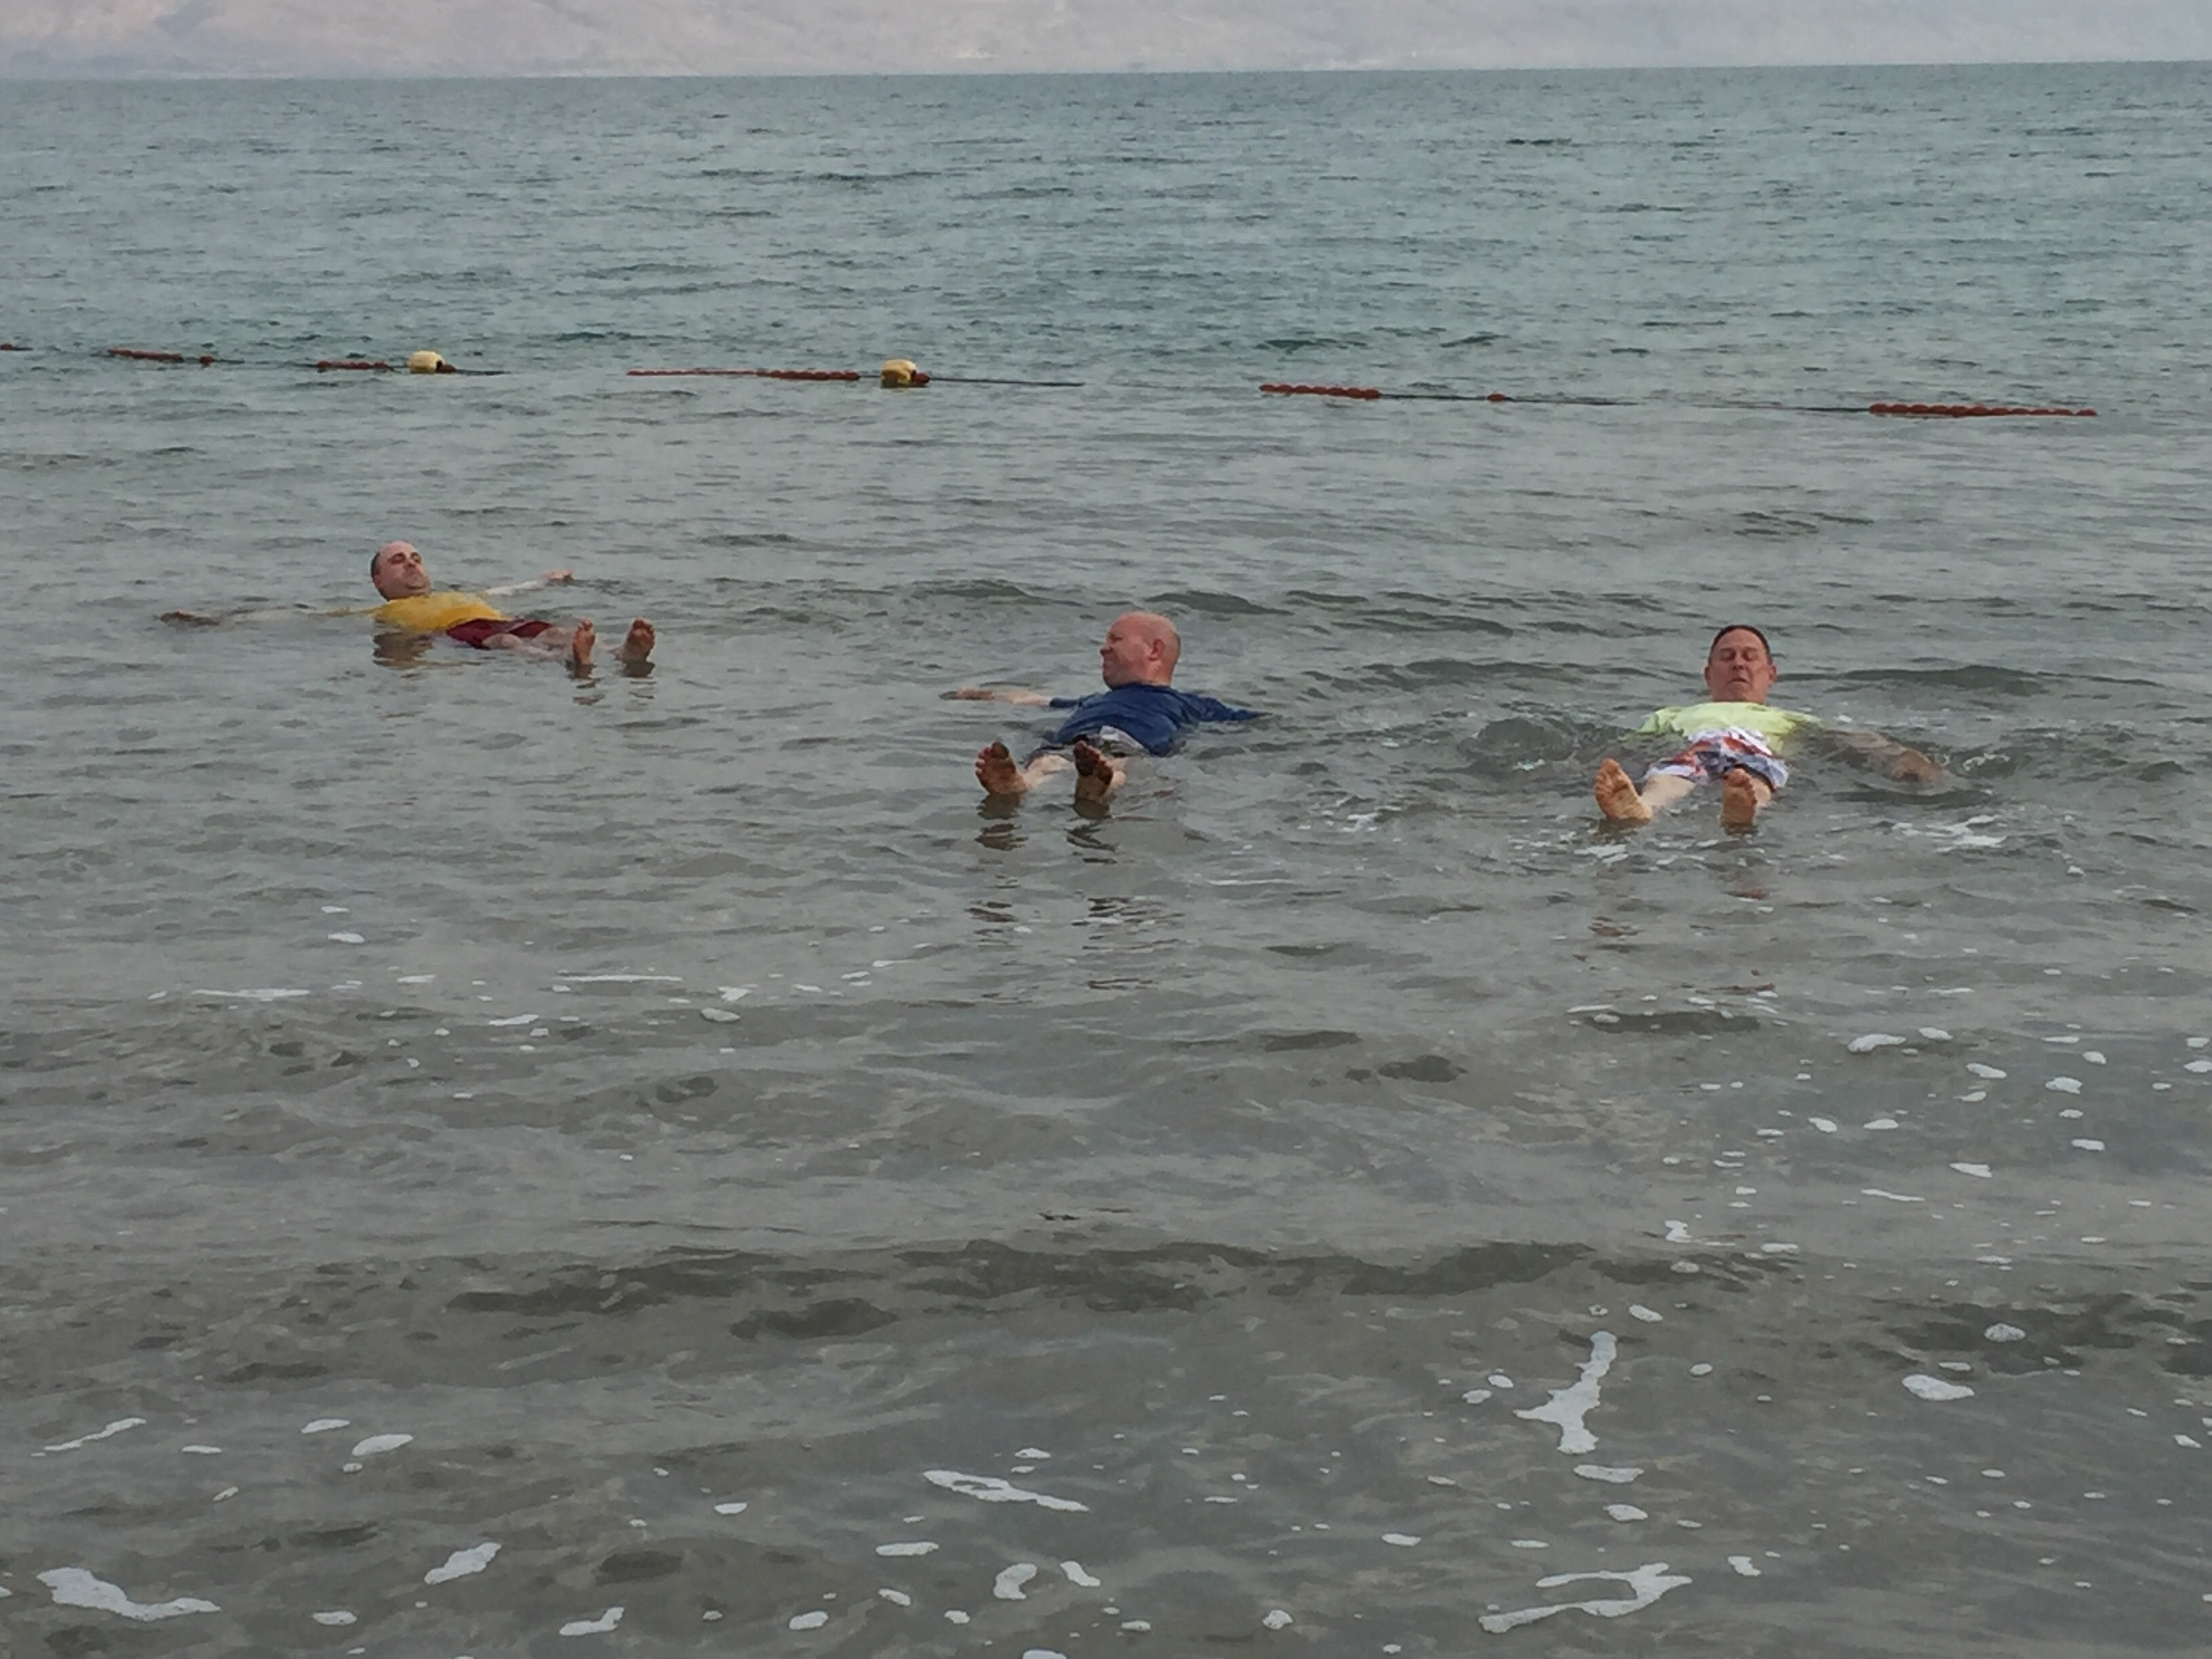 Several of us bouyantly floating in the Dead Sea.